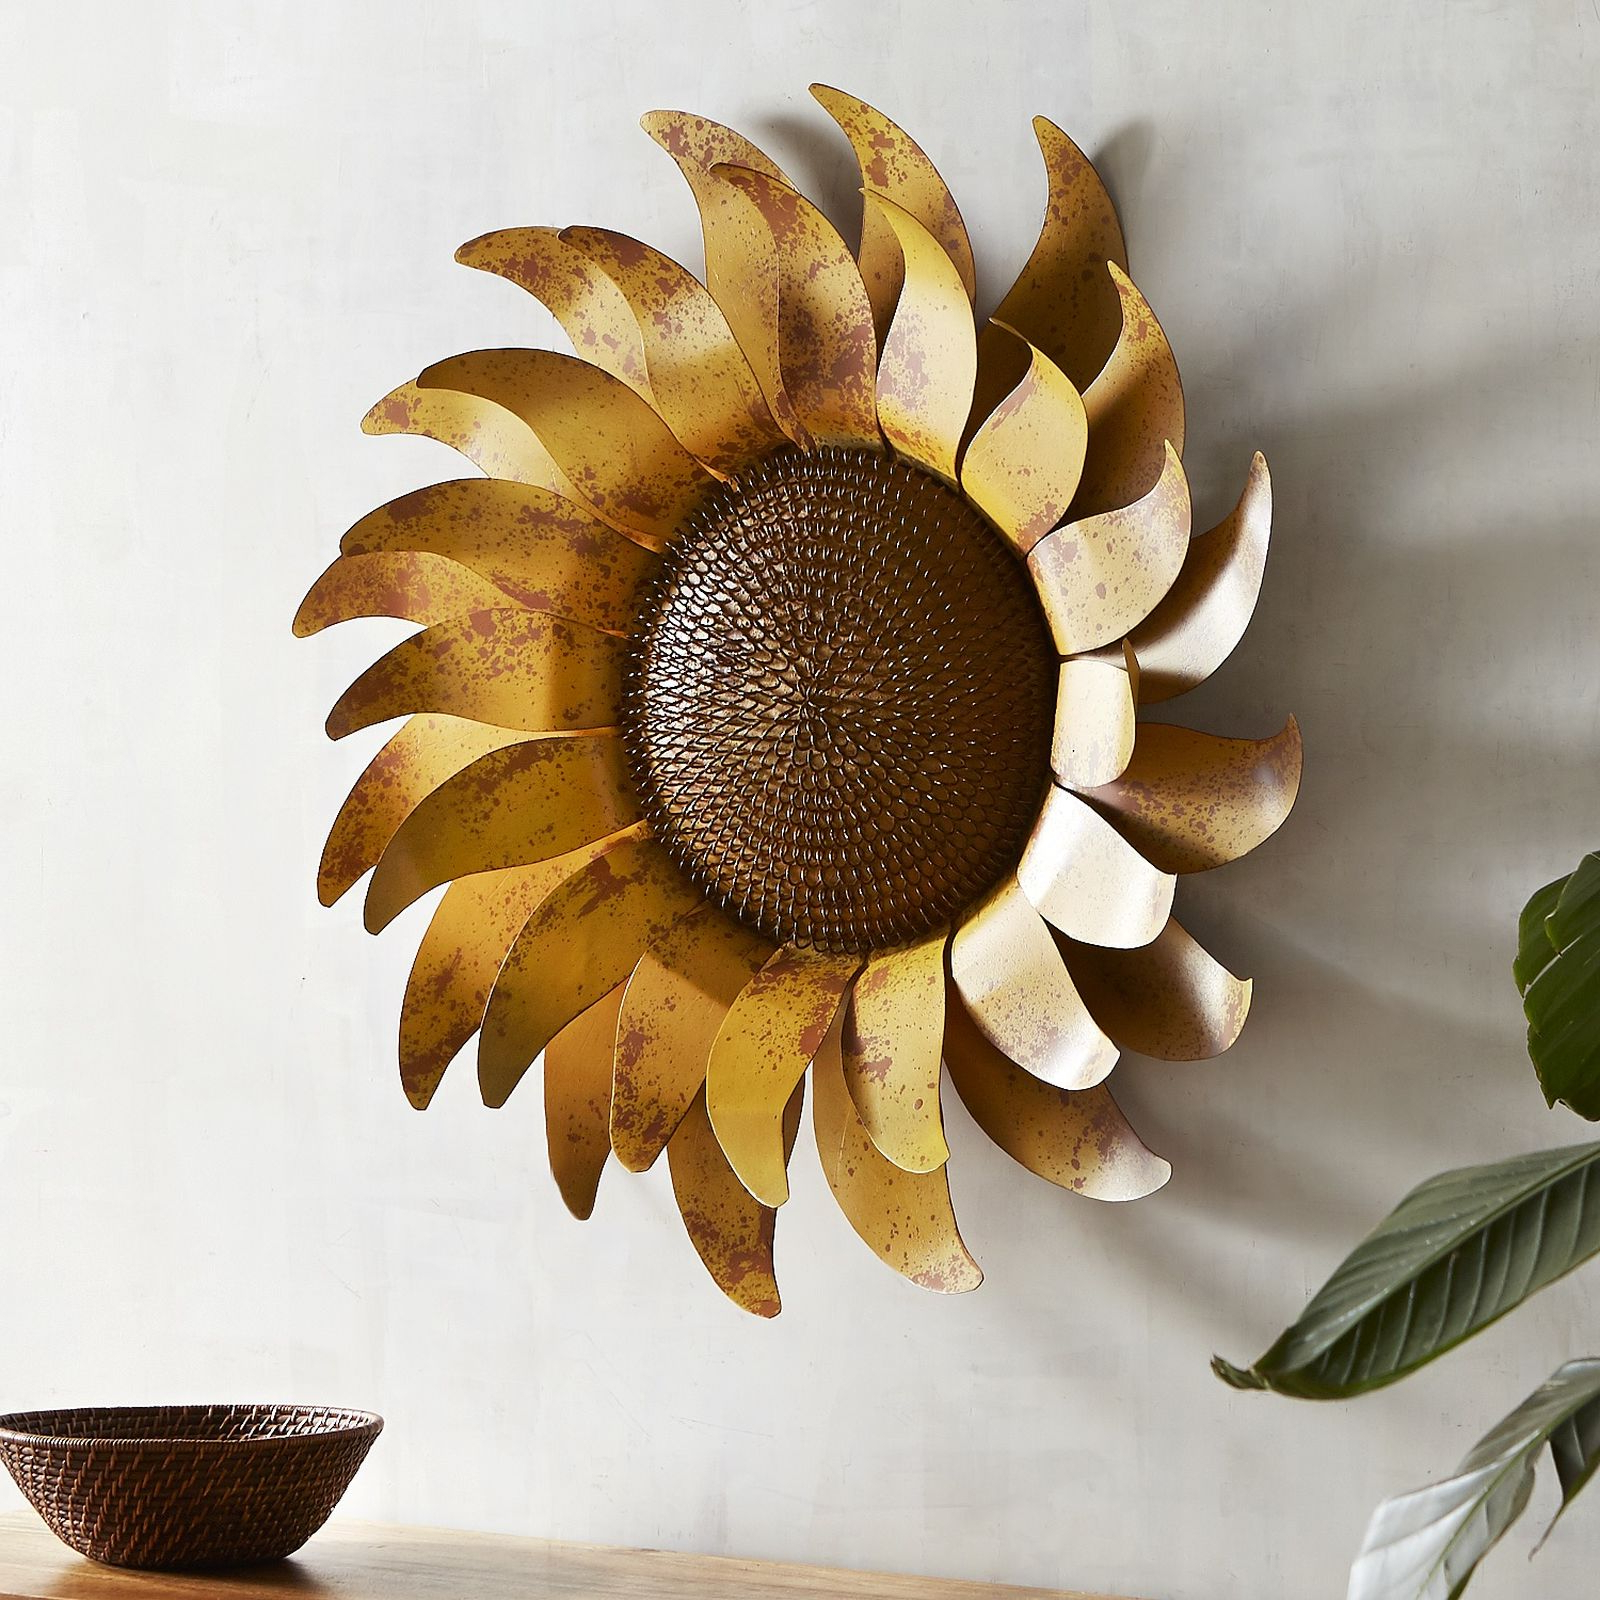 Widely Used Valuable Sunflower Wall Decor Or Metal Youtube For Kitchen Diy Con With Regard To Nature Metal Sun Wall Decor (View 9 of 20)